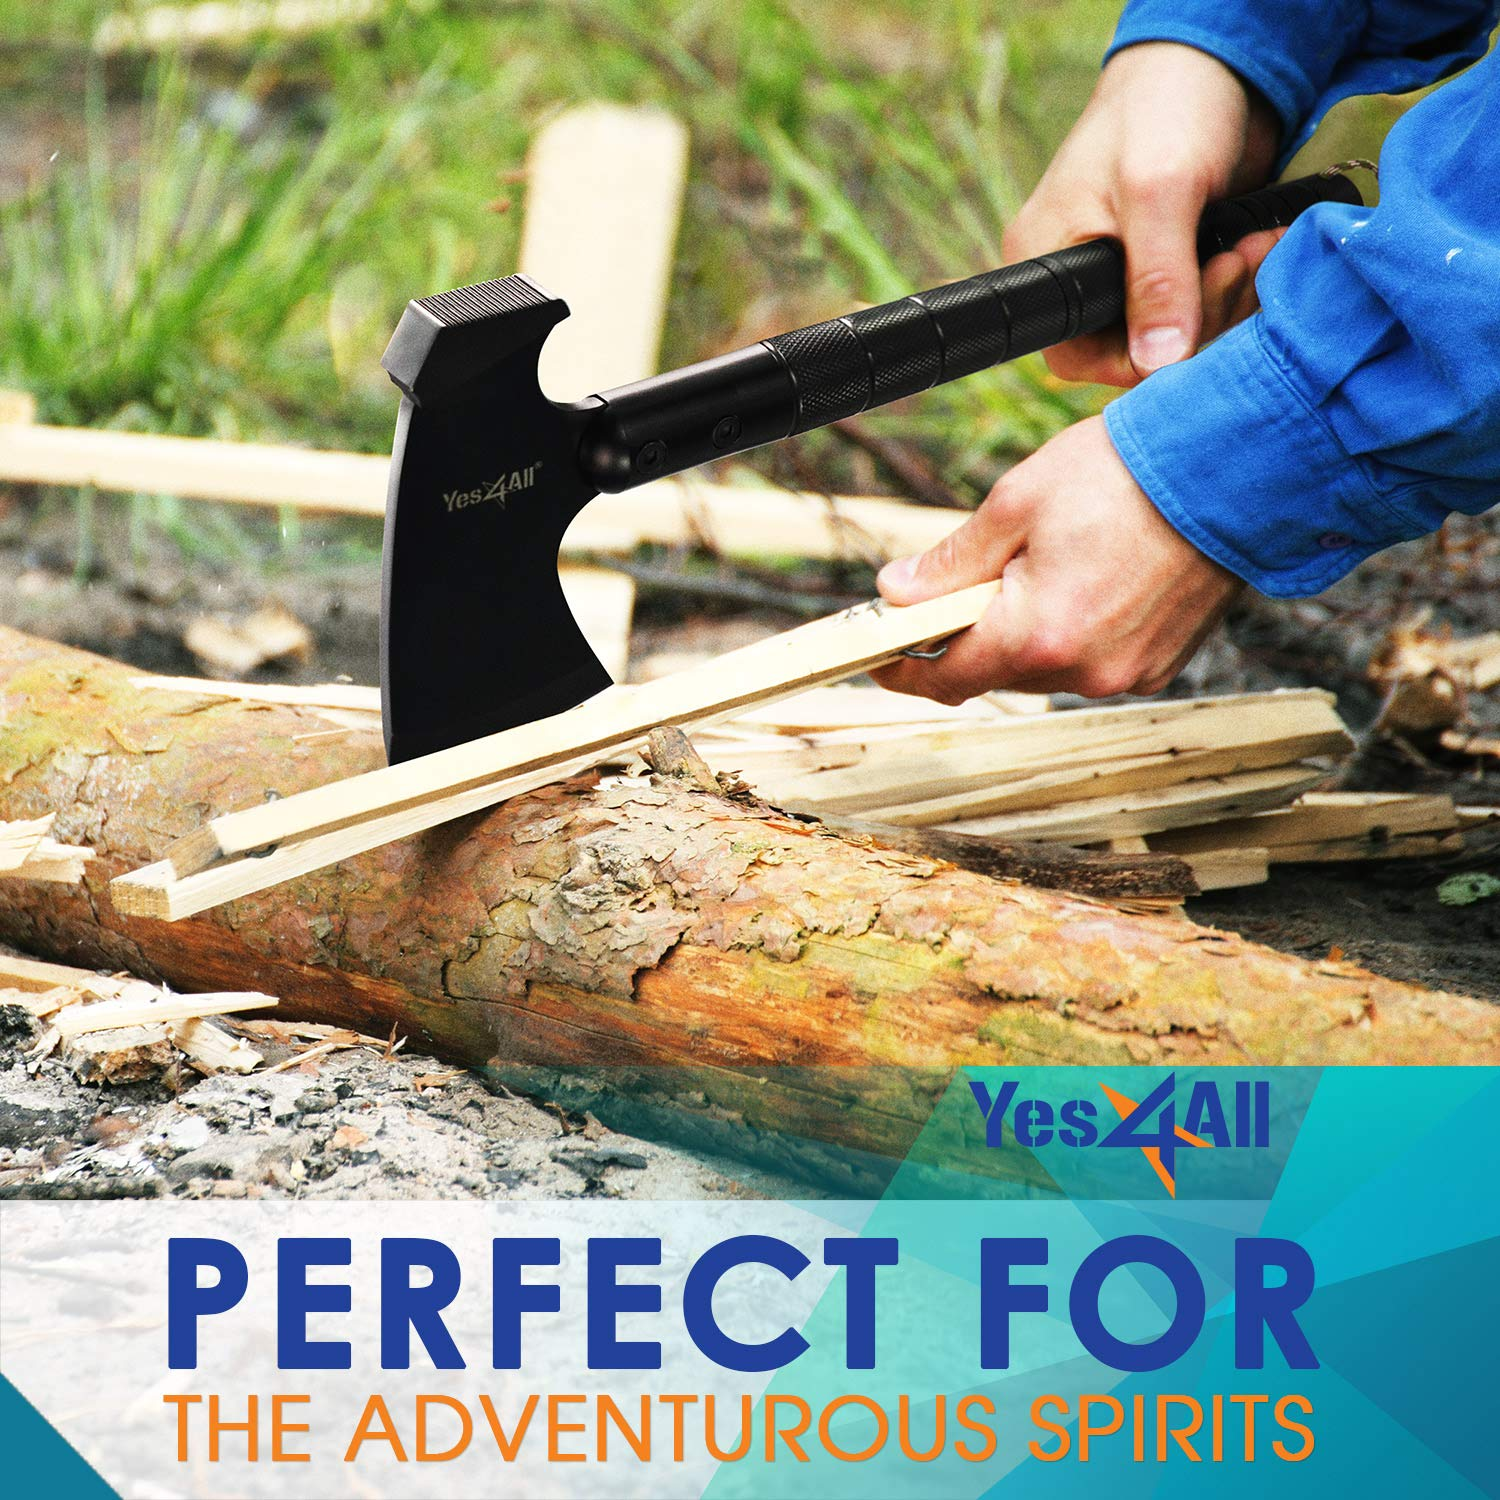 Yes4All Camping Axe Set Kit with Sheath – Survival Axe/Camping Hatchet and Knife Kit – Portable Folding Multi-Tool for Outdoor Adventure (Black) by Yes4All (Image #7)